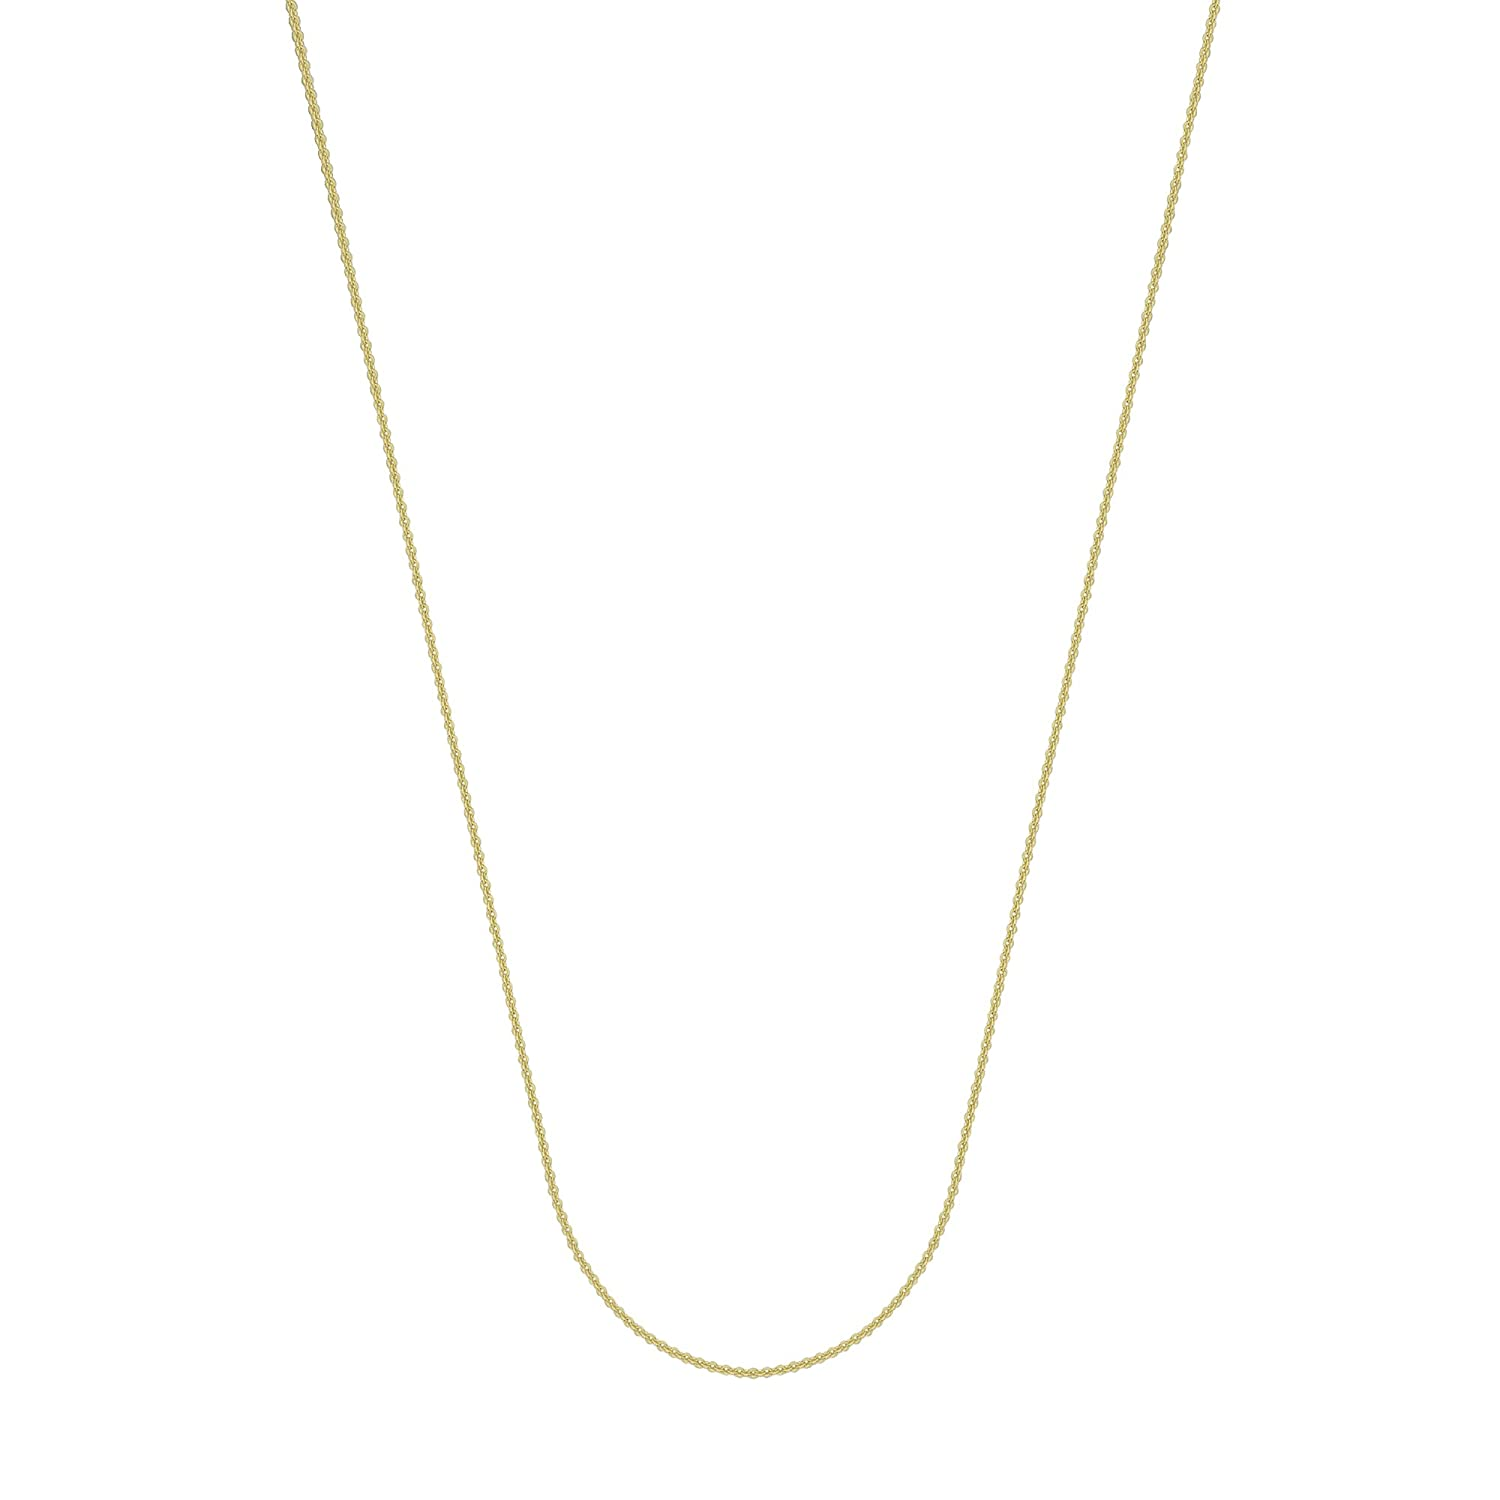 24 inch 20 inch 14K Yellow Gold 1.05 Cable Chain in 16 inch 18 inch